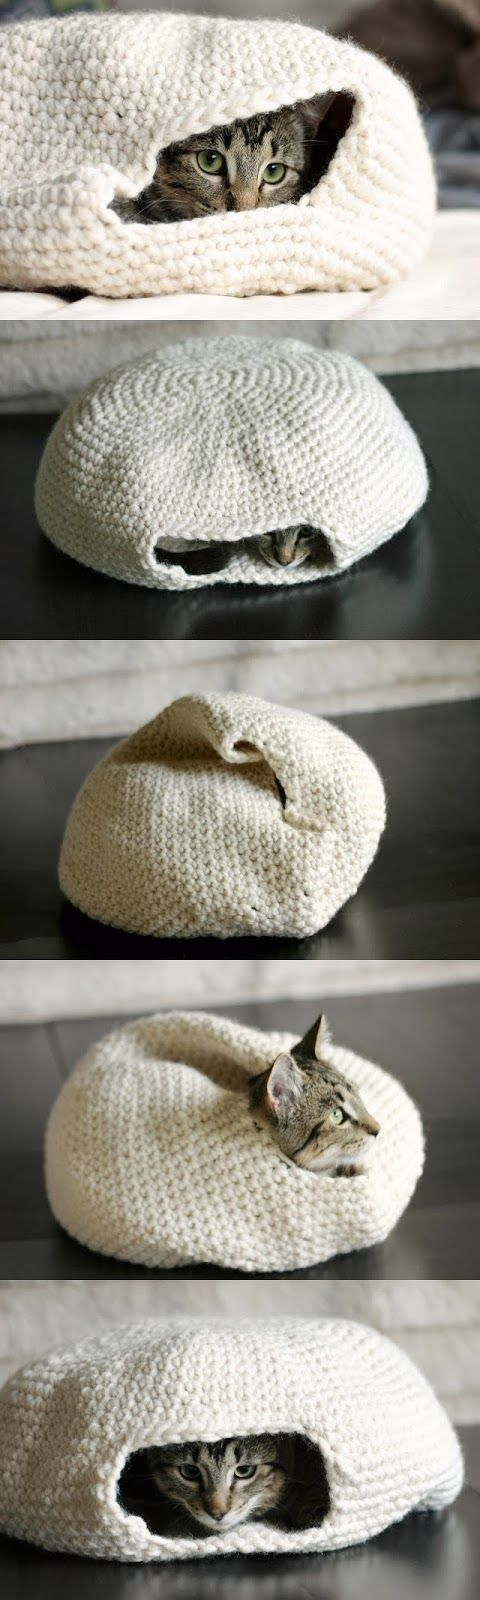 How to Make a Handmade Crochet Cat Bed. Very Cheap and Easy to Make!!<<<I should do this for my cat!!!